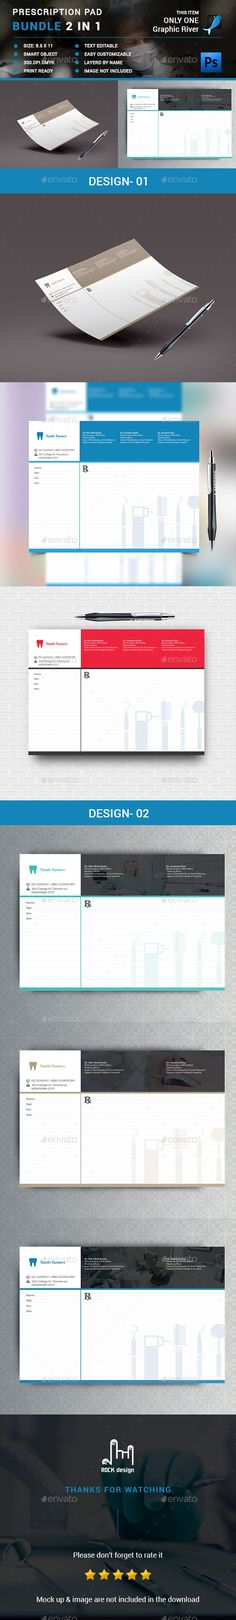 Prescription Pad Template | Templates, Template and Photoshop